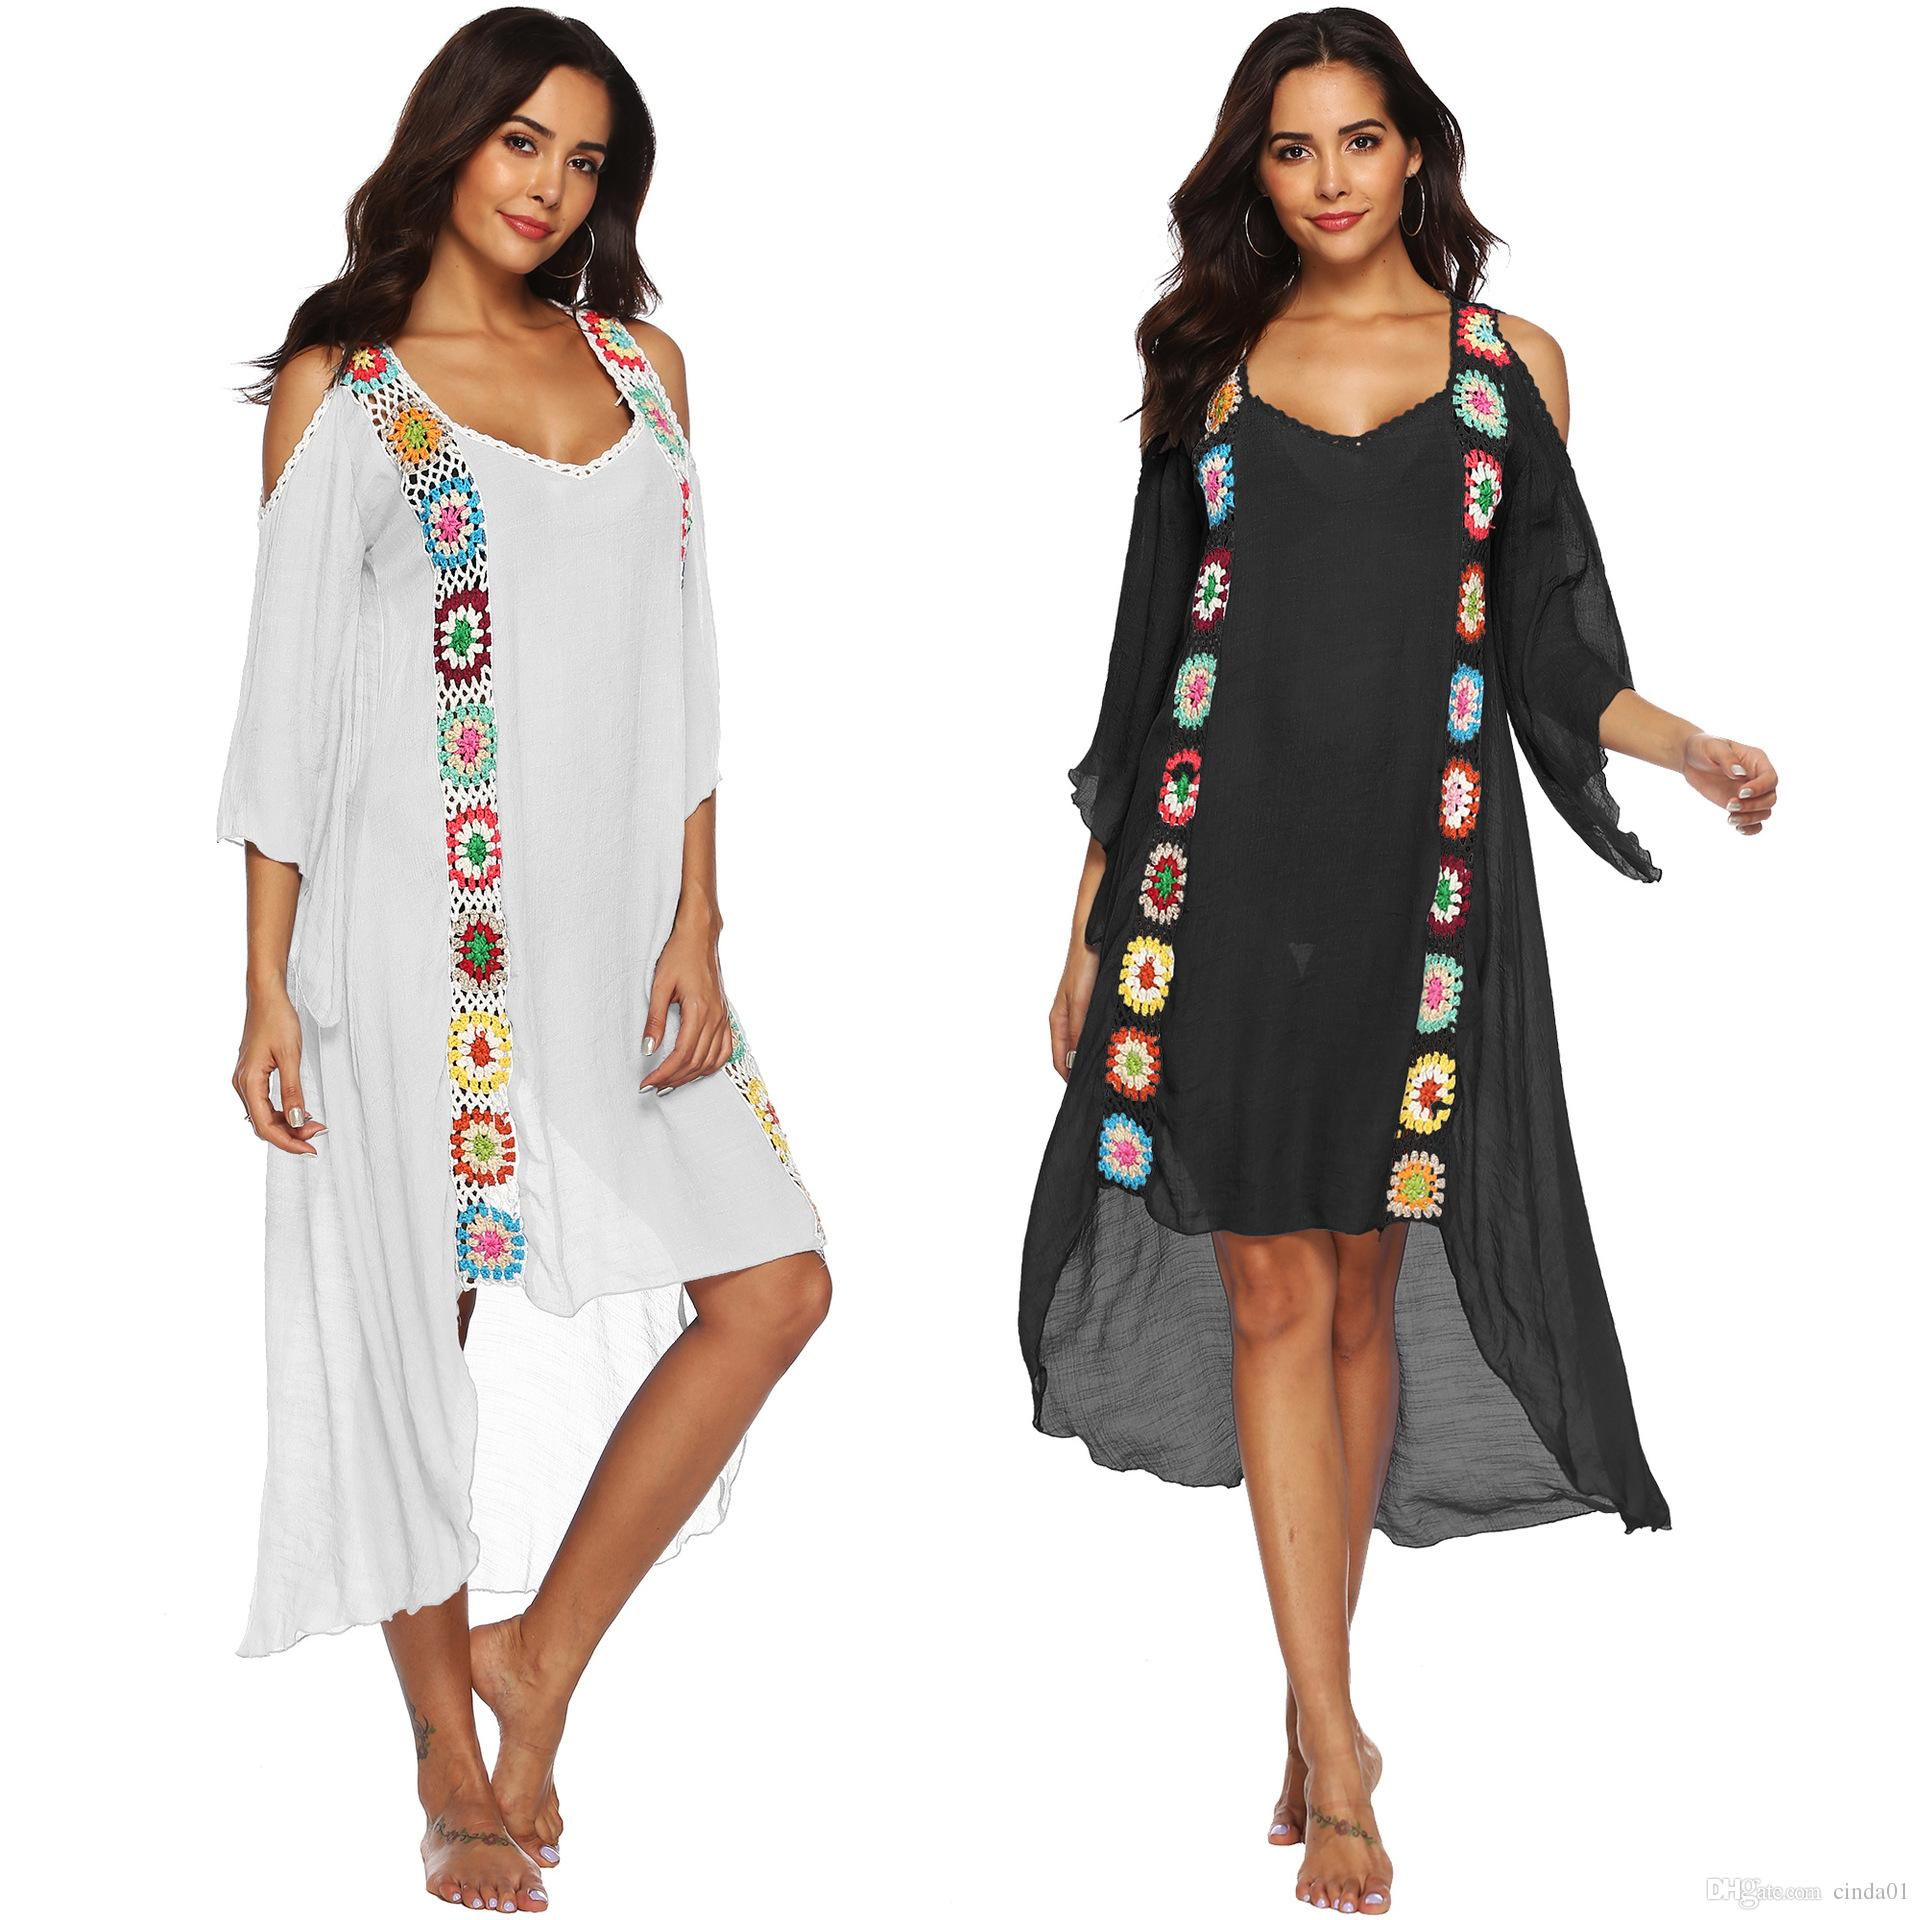 f8869c8bb63 Women Panelled Asymmetrical Dress Casual Smock Spaghetti Strap Tops Summer  Women Sexy Transparent Thin Dresses Free Size Womens Evening Dresses Junior  Party ...